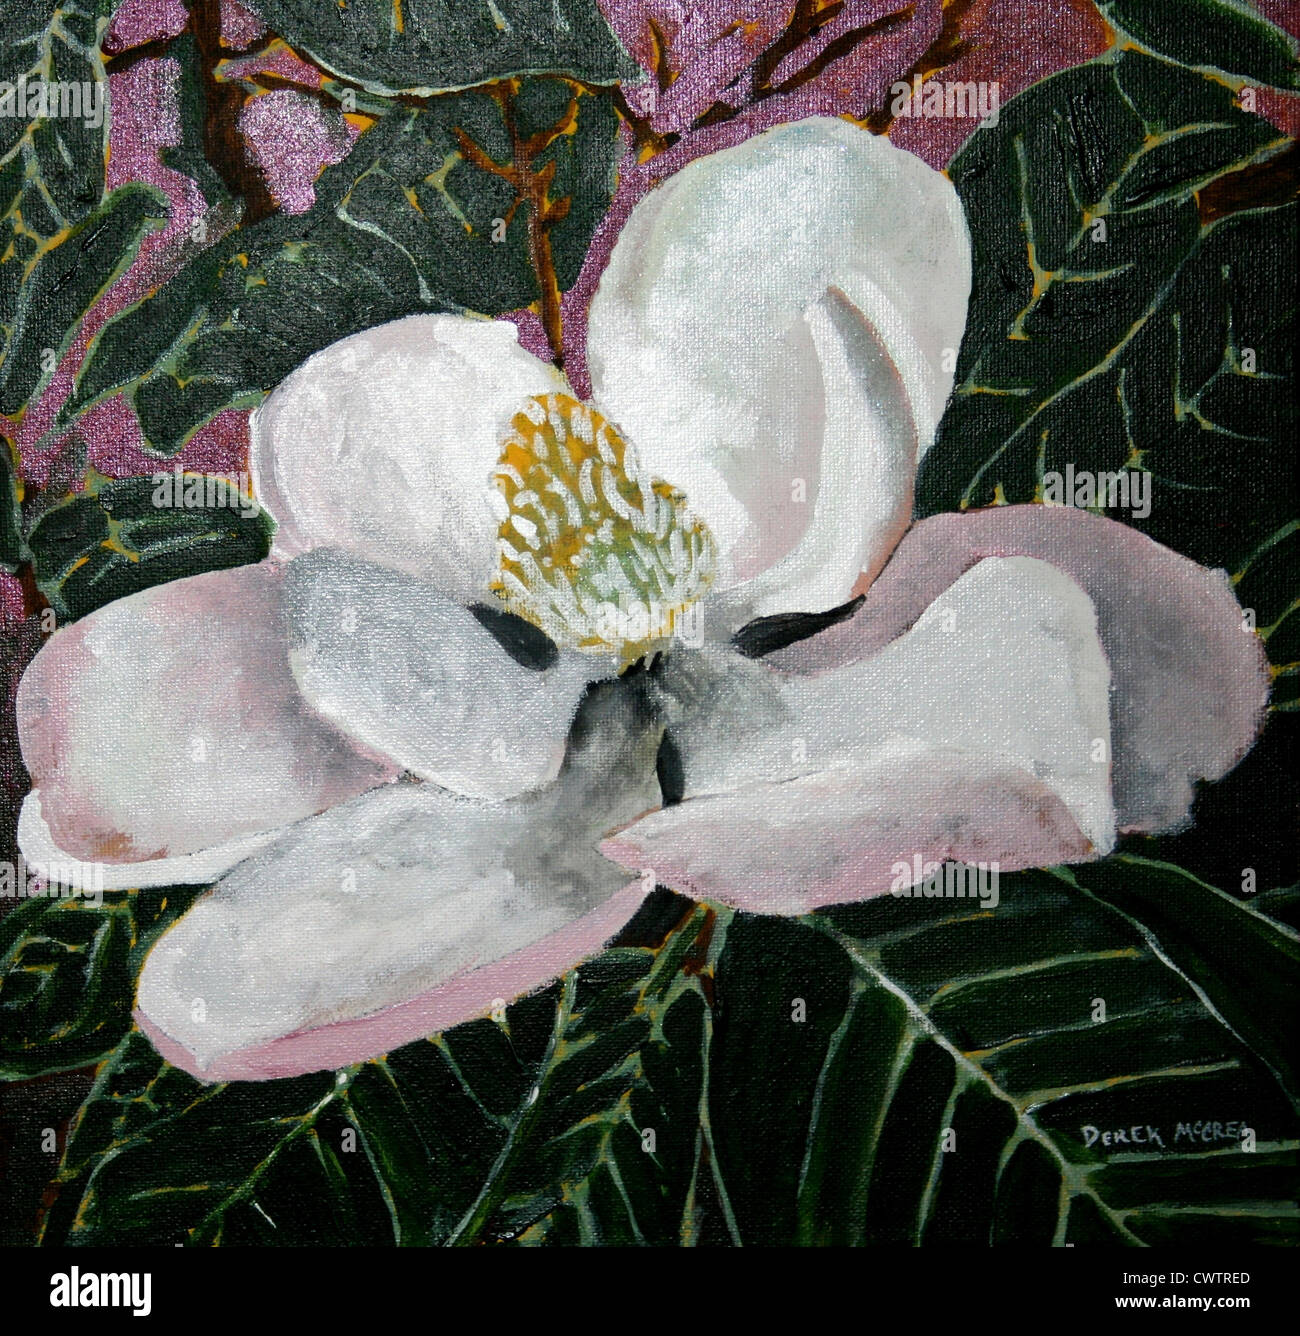 Magnolia Flower Acrylic Painting Stock Photo 50332421 Alamy